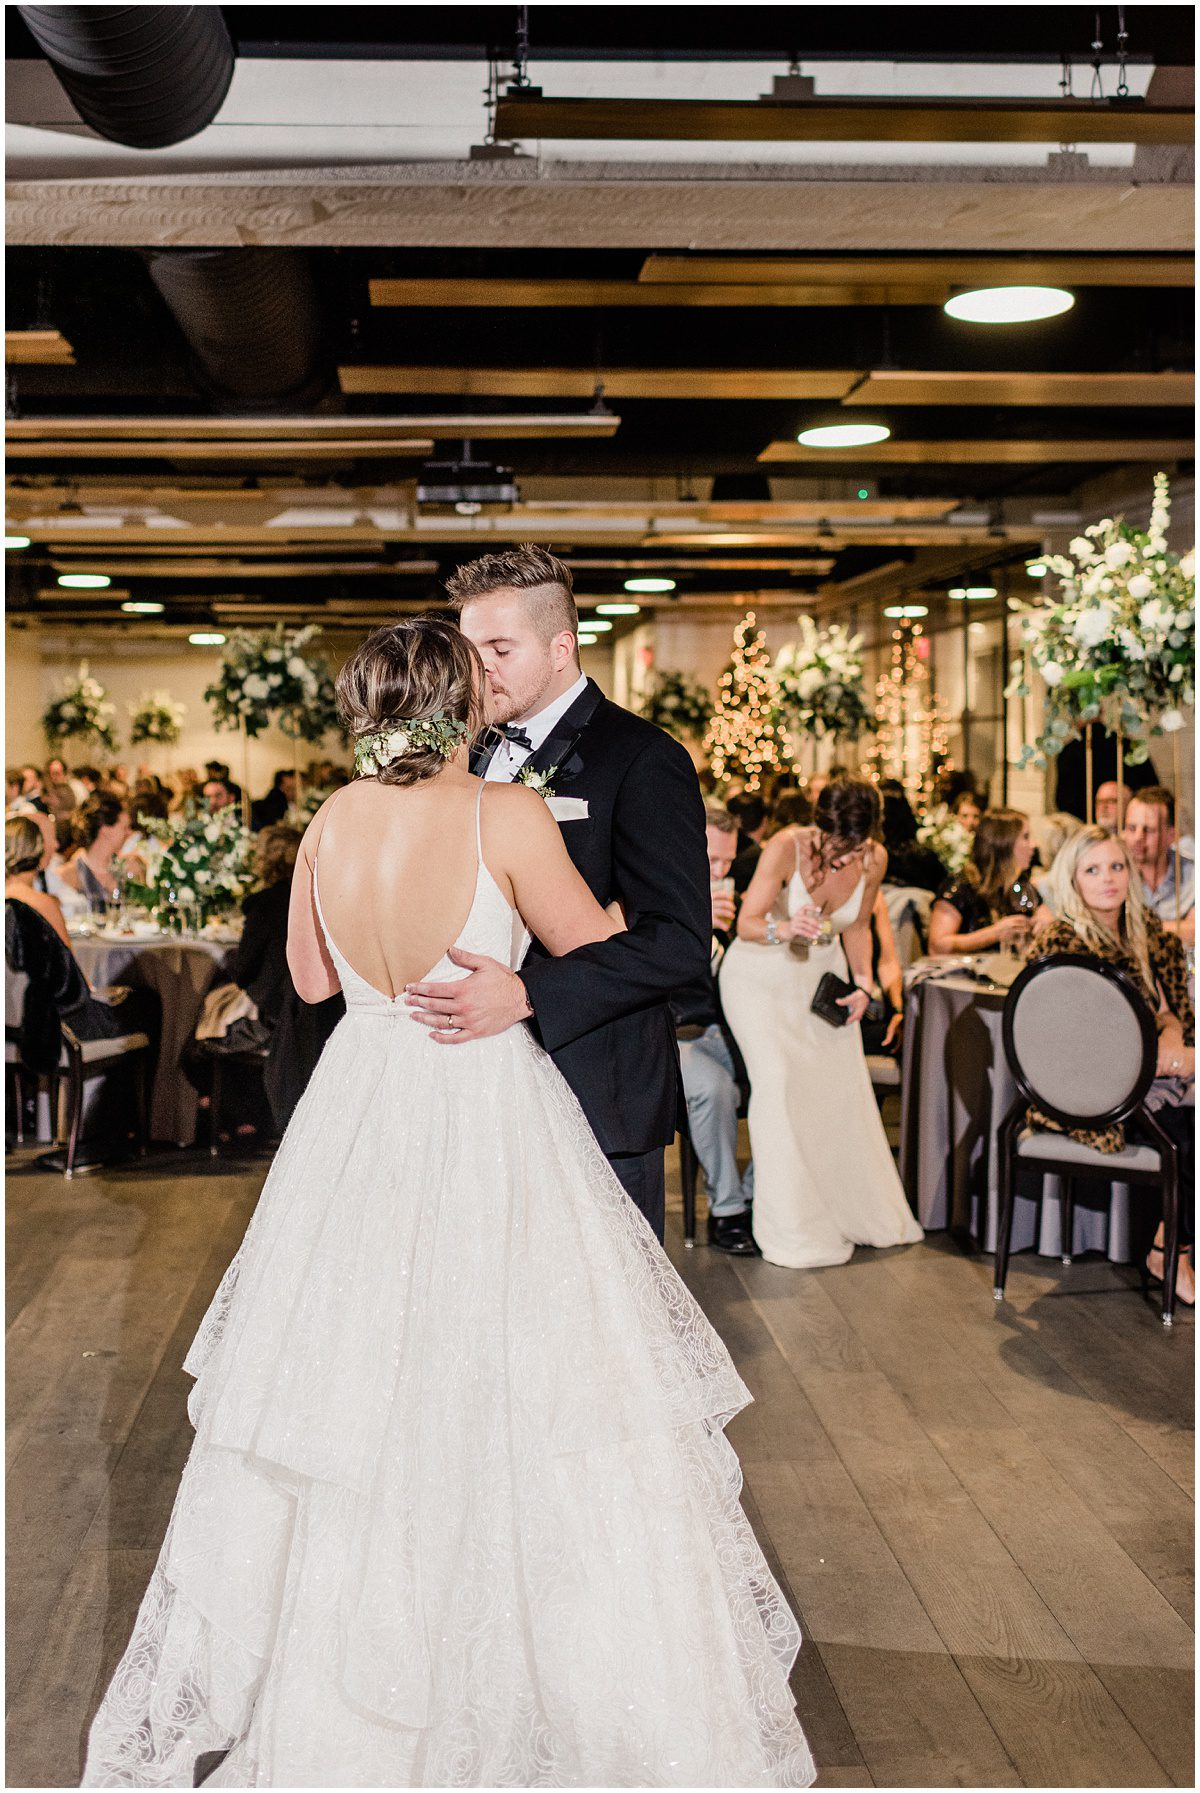 Bride and Groom first dance photos